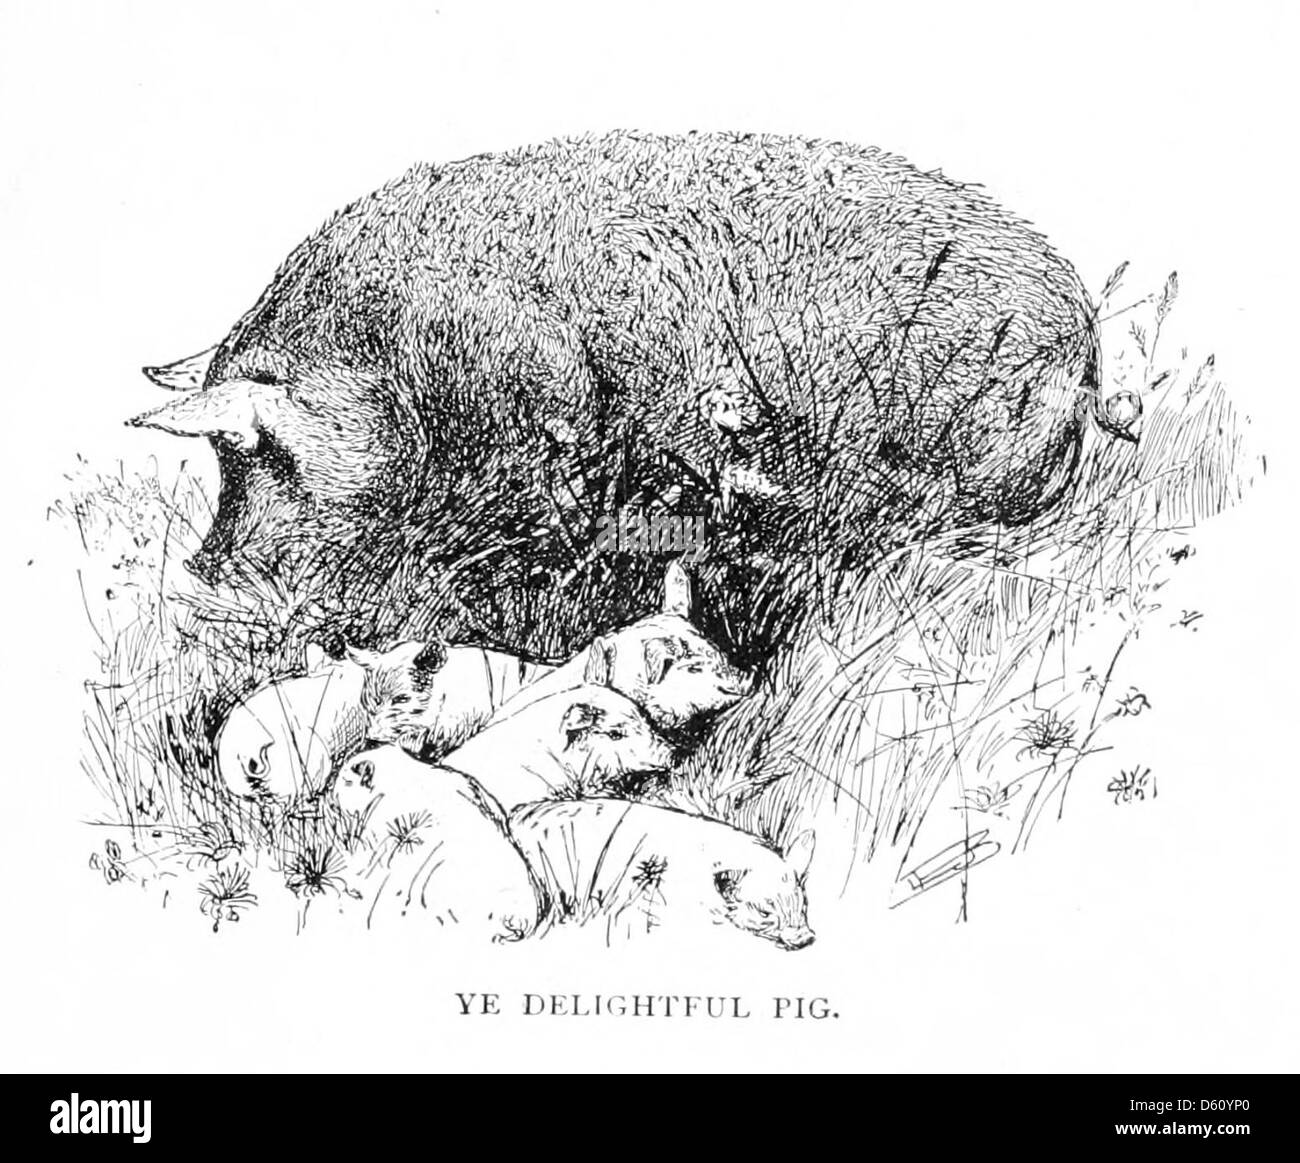 a dissertation upon roast pig theme